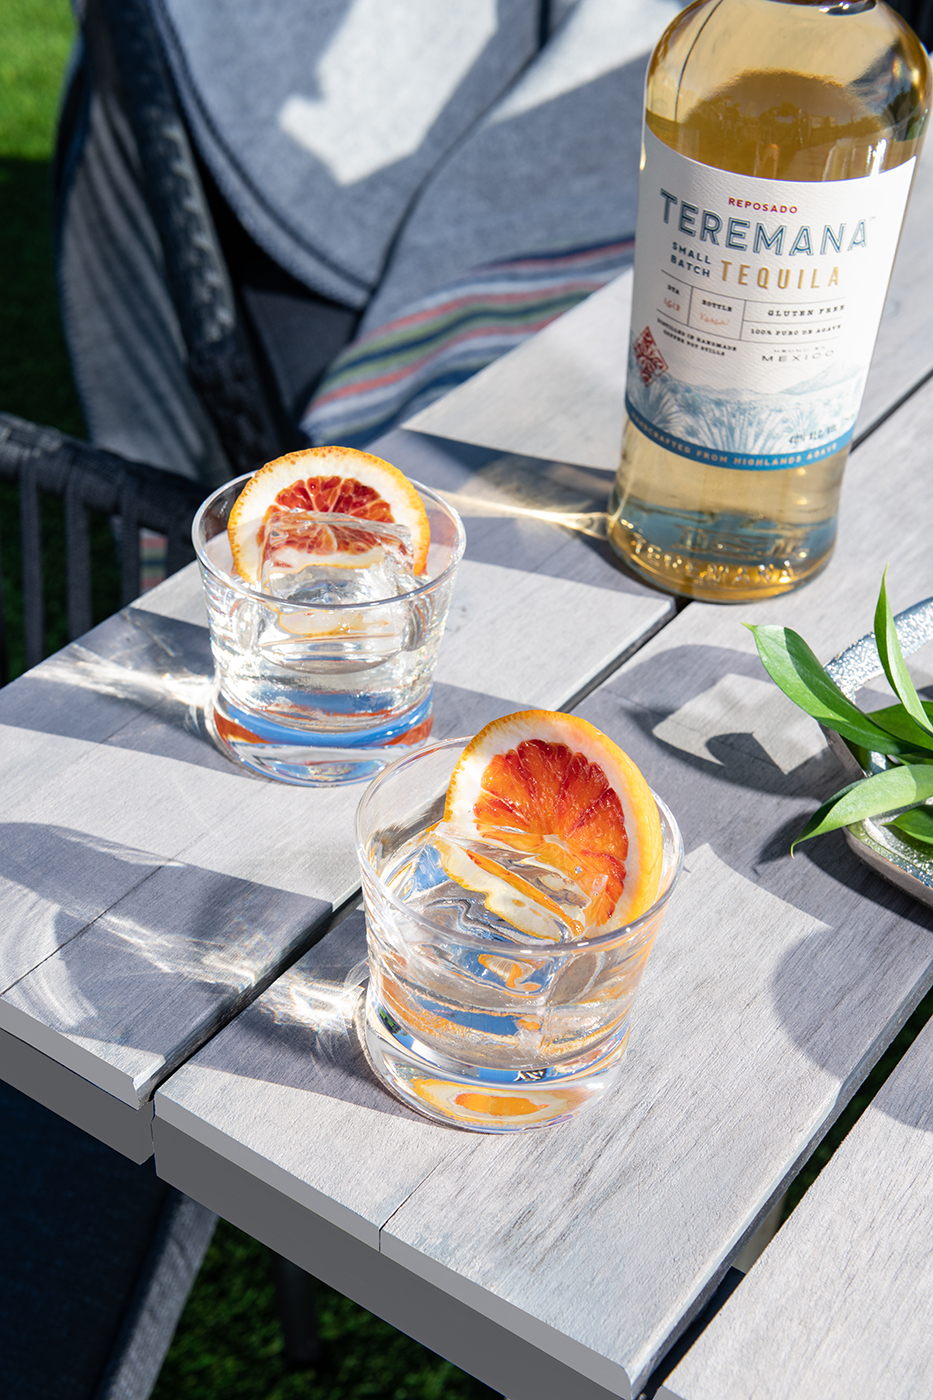 Two glasses filled with Teramana tequila and orange slices shot by Morgan Ione